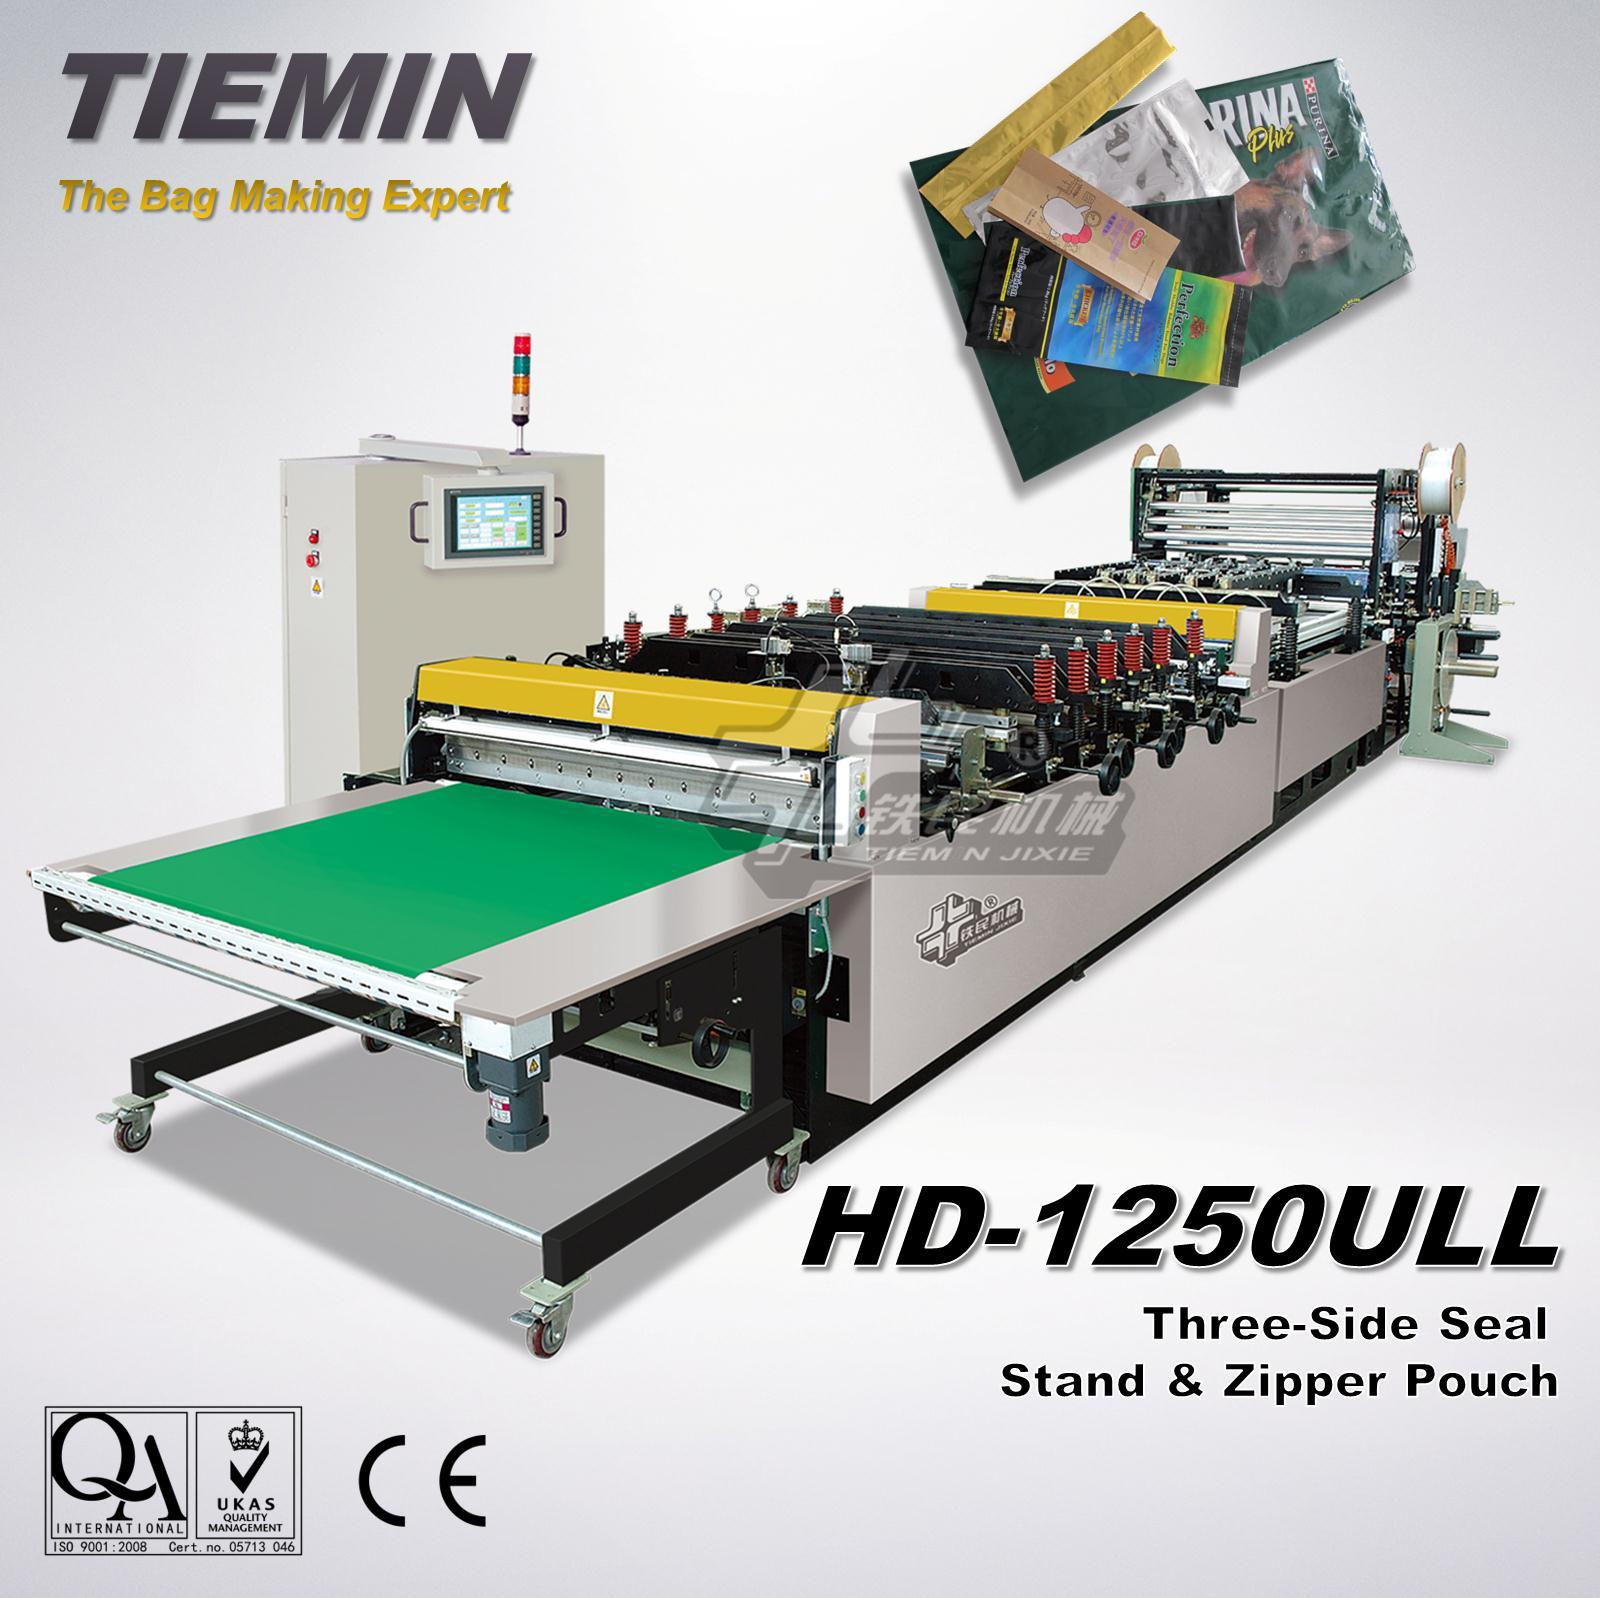 Tiemin High Quality Automatic High Speed Three-Side Bag Making Machine Stand Pouch Zipper Bag & Pouch HD-1250ull